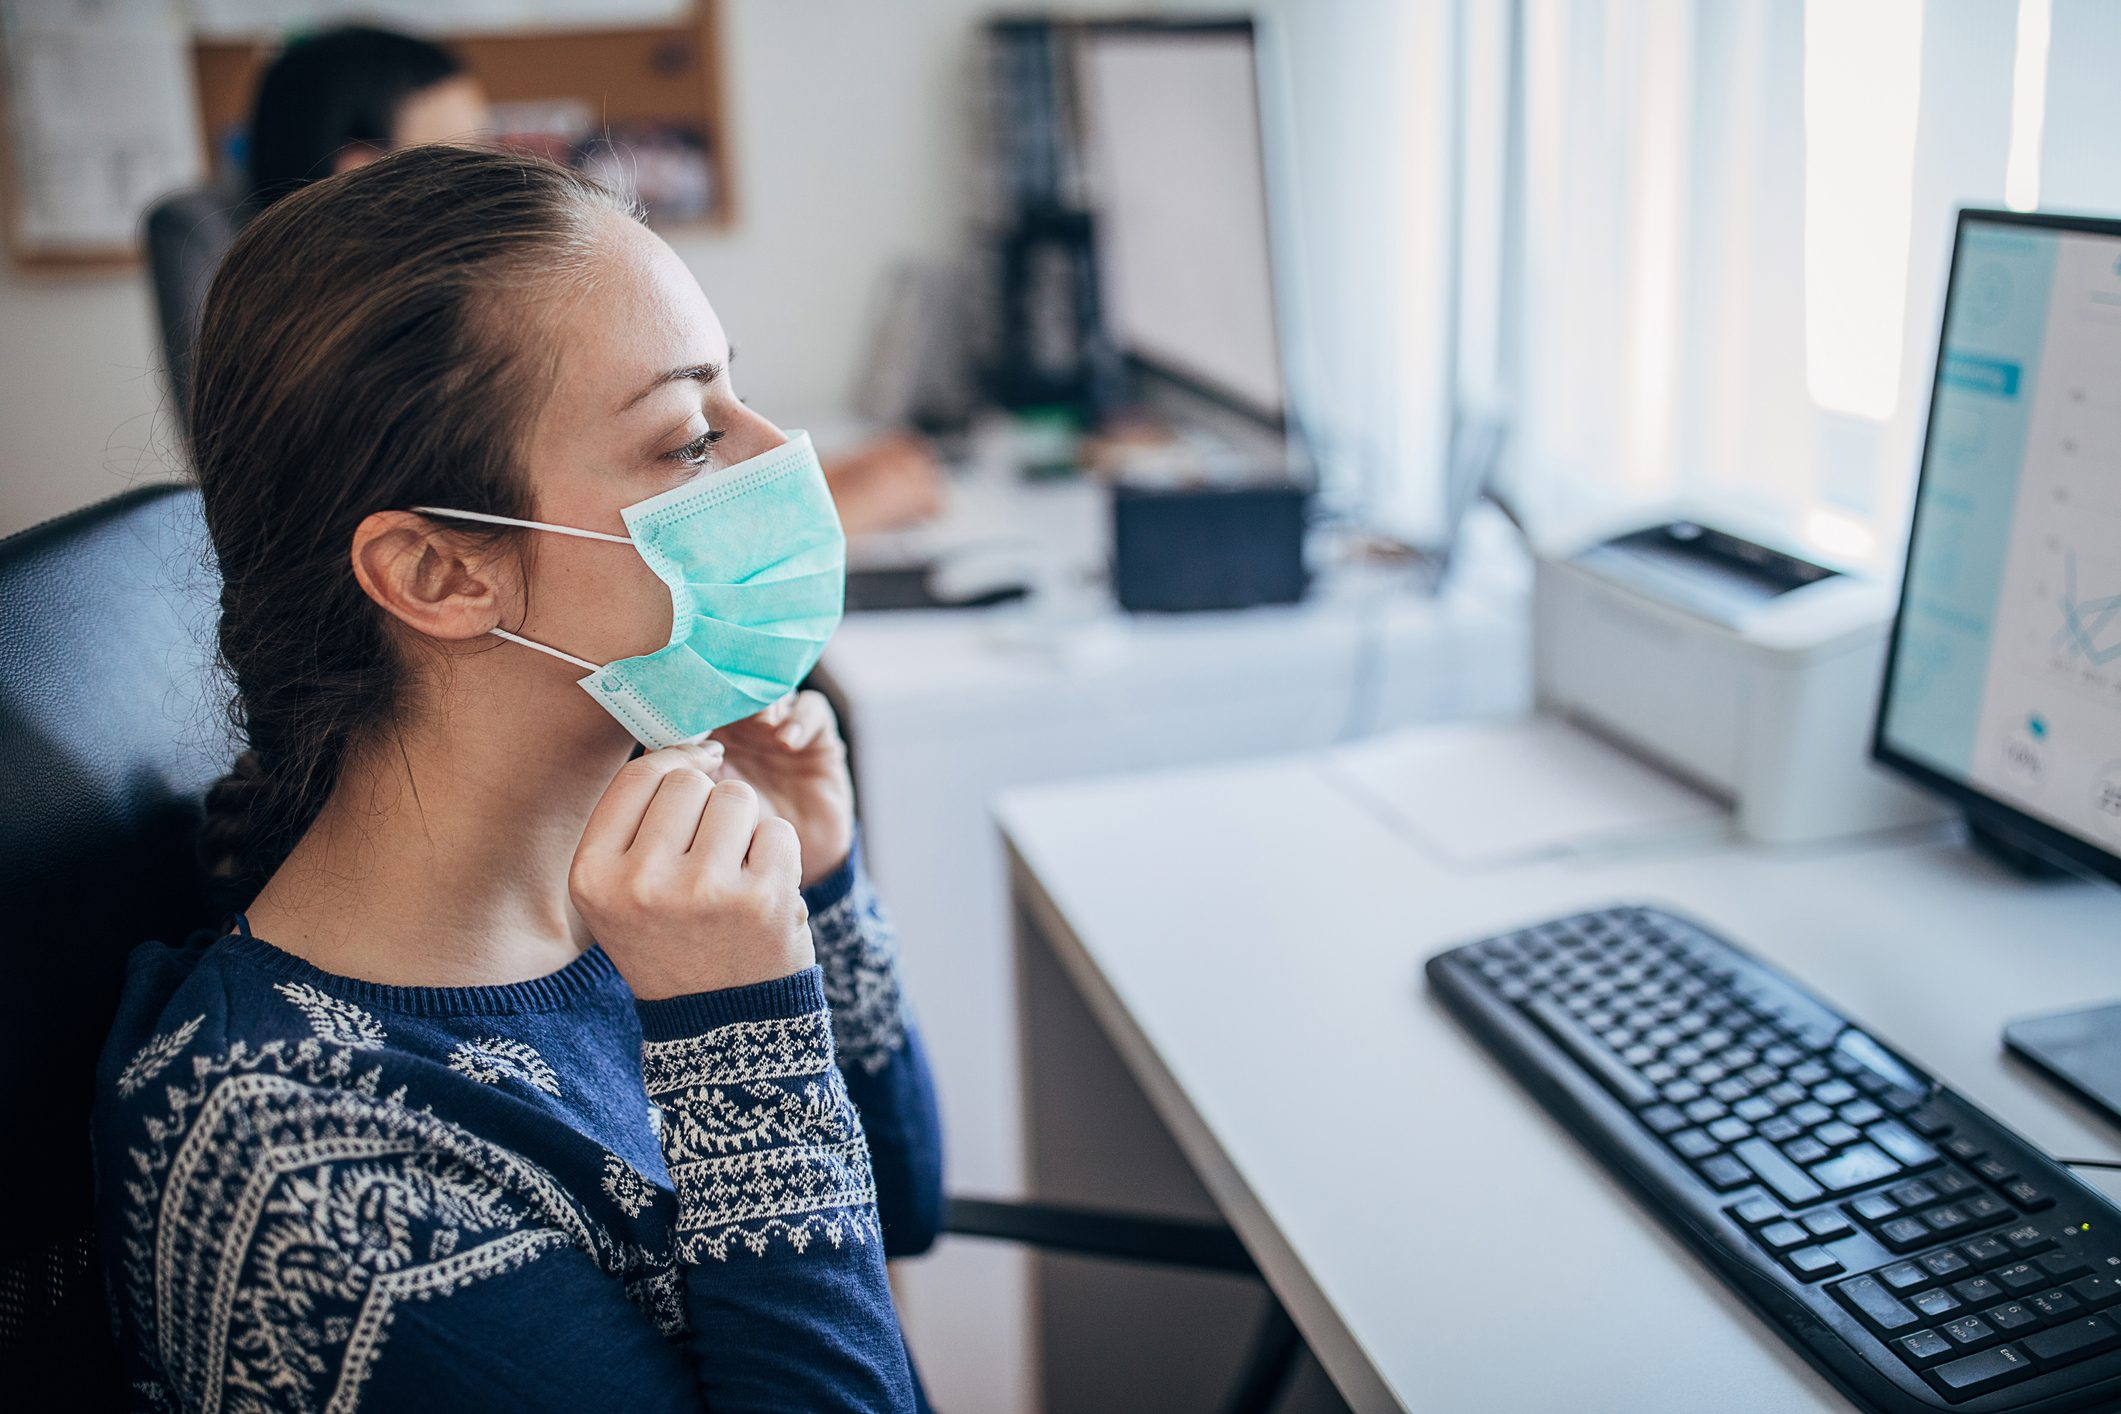 Young woman in the office putting on the protective mask, to prevent coronavirus from spreading